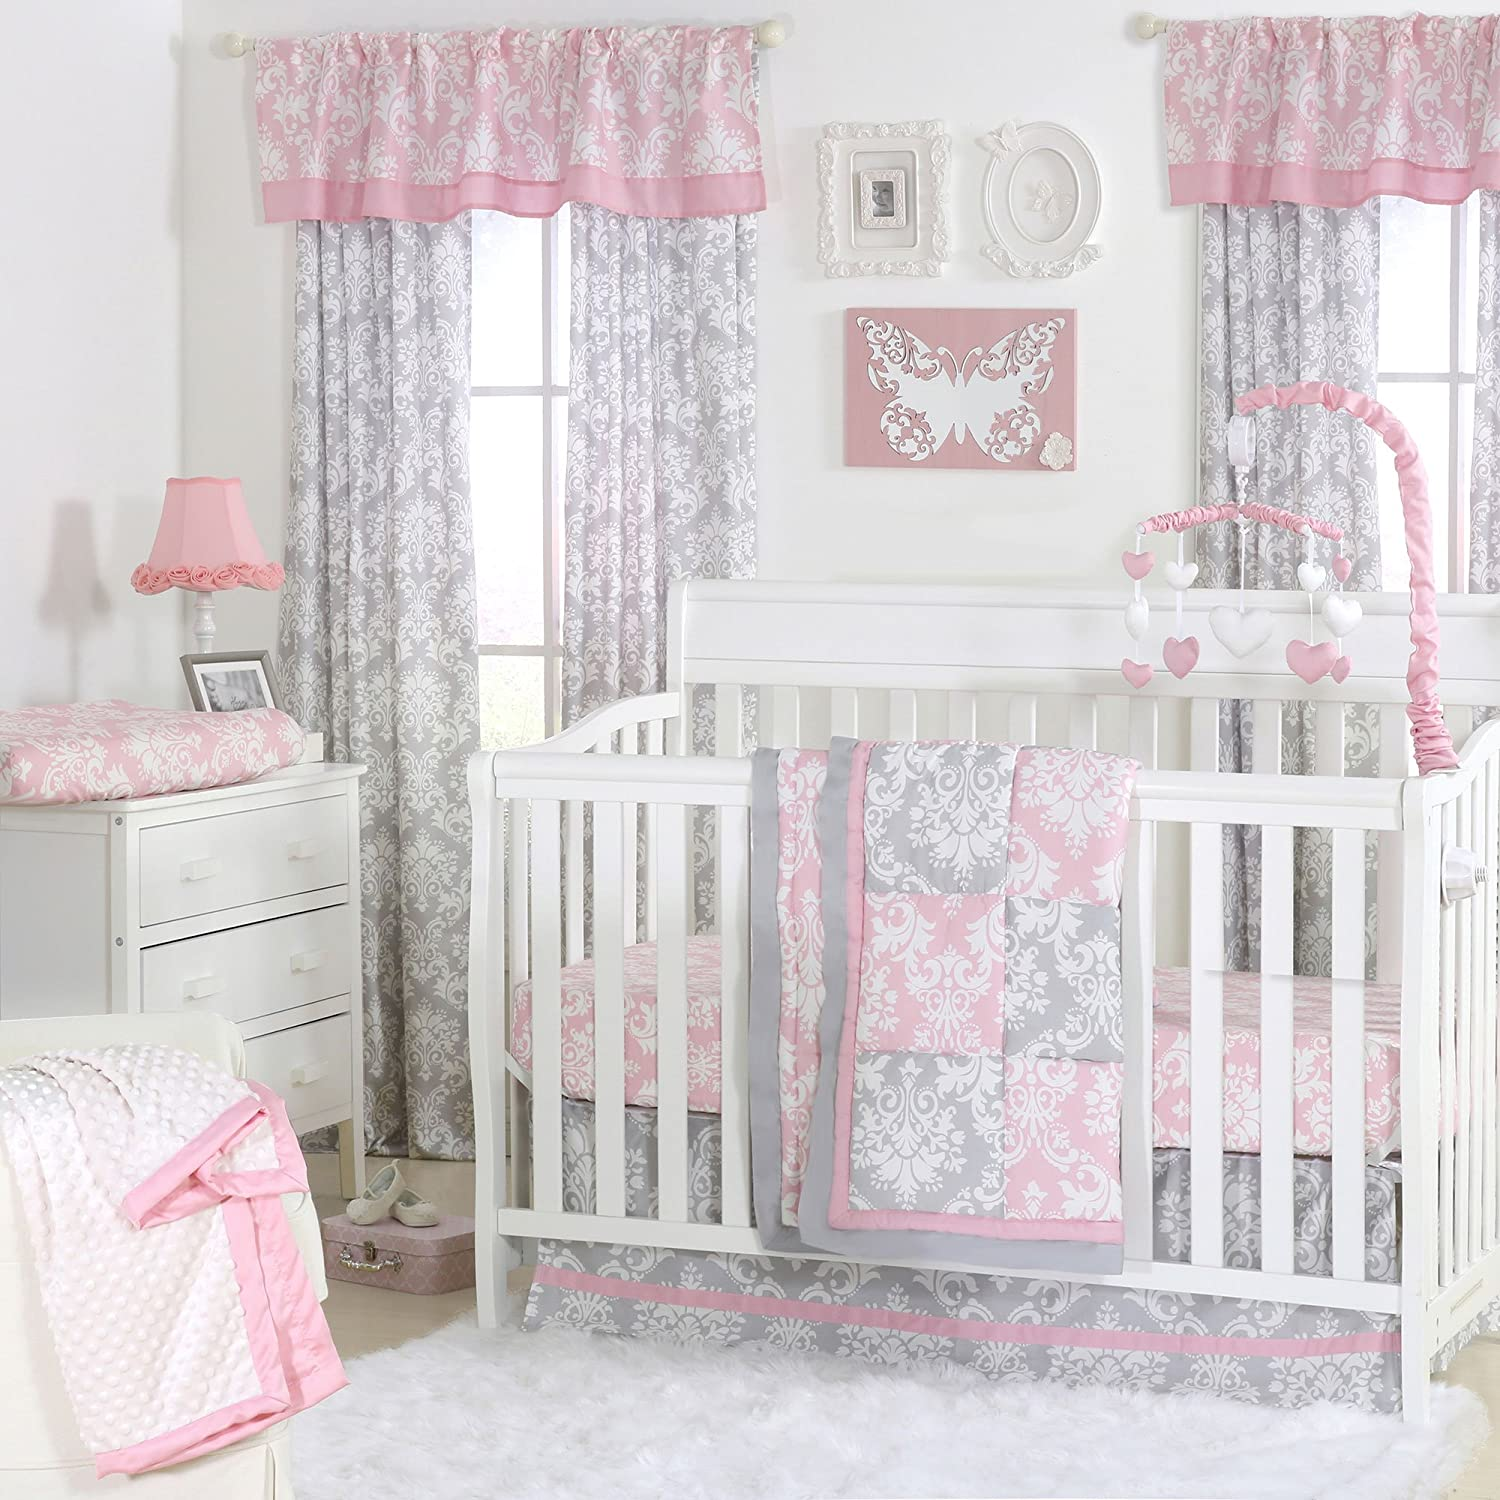 Pink and Grey Damask Patchwork 4 Piece Baby Crib Bedding Set by The Peanut Shell by The Peanut Shell